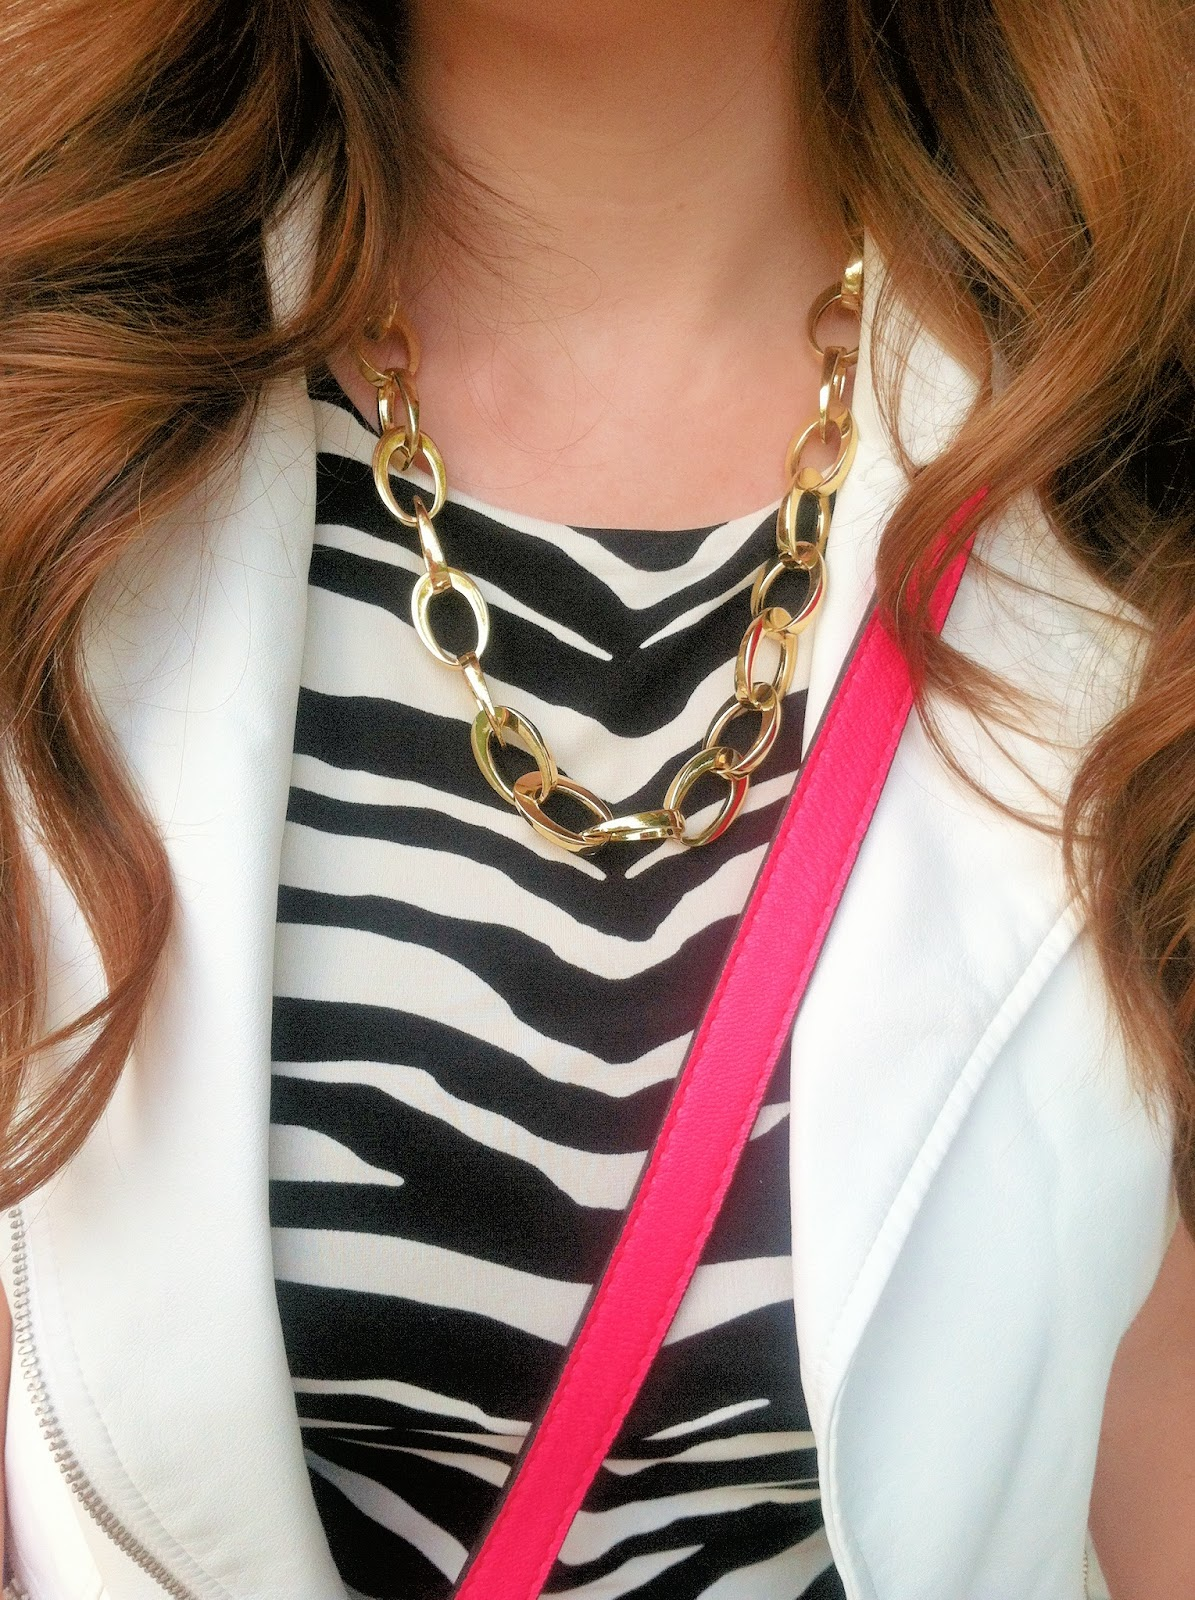 what-to-wear-to-a-bachelorette-party, girls-night-out-fashion, jennifer-lopez-zebra-print-sheath-dress-kohls, jennifer-lopez-white-faux-leather-moto-vest-kohls, target-mini-neon-pink-crossbody, target-gold-chain-link-necklace, simply-vera-wang-contrast-heels-kohls,